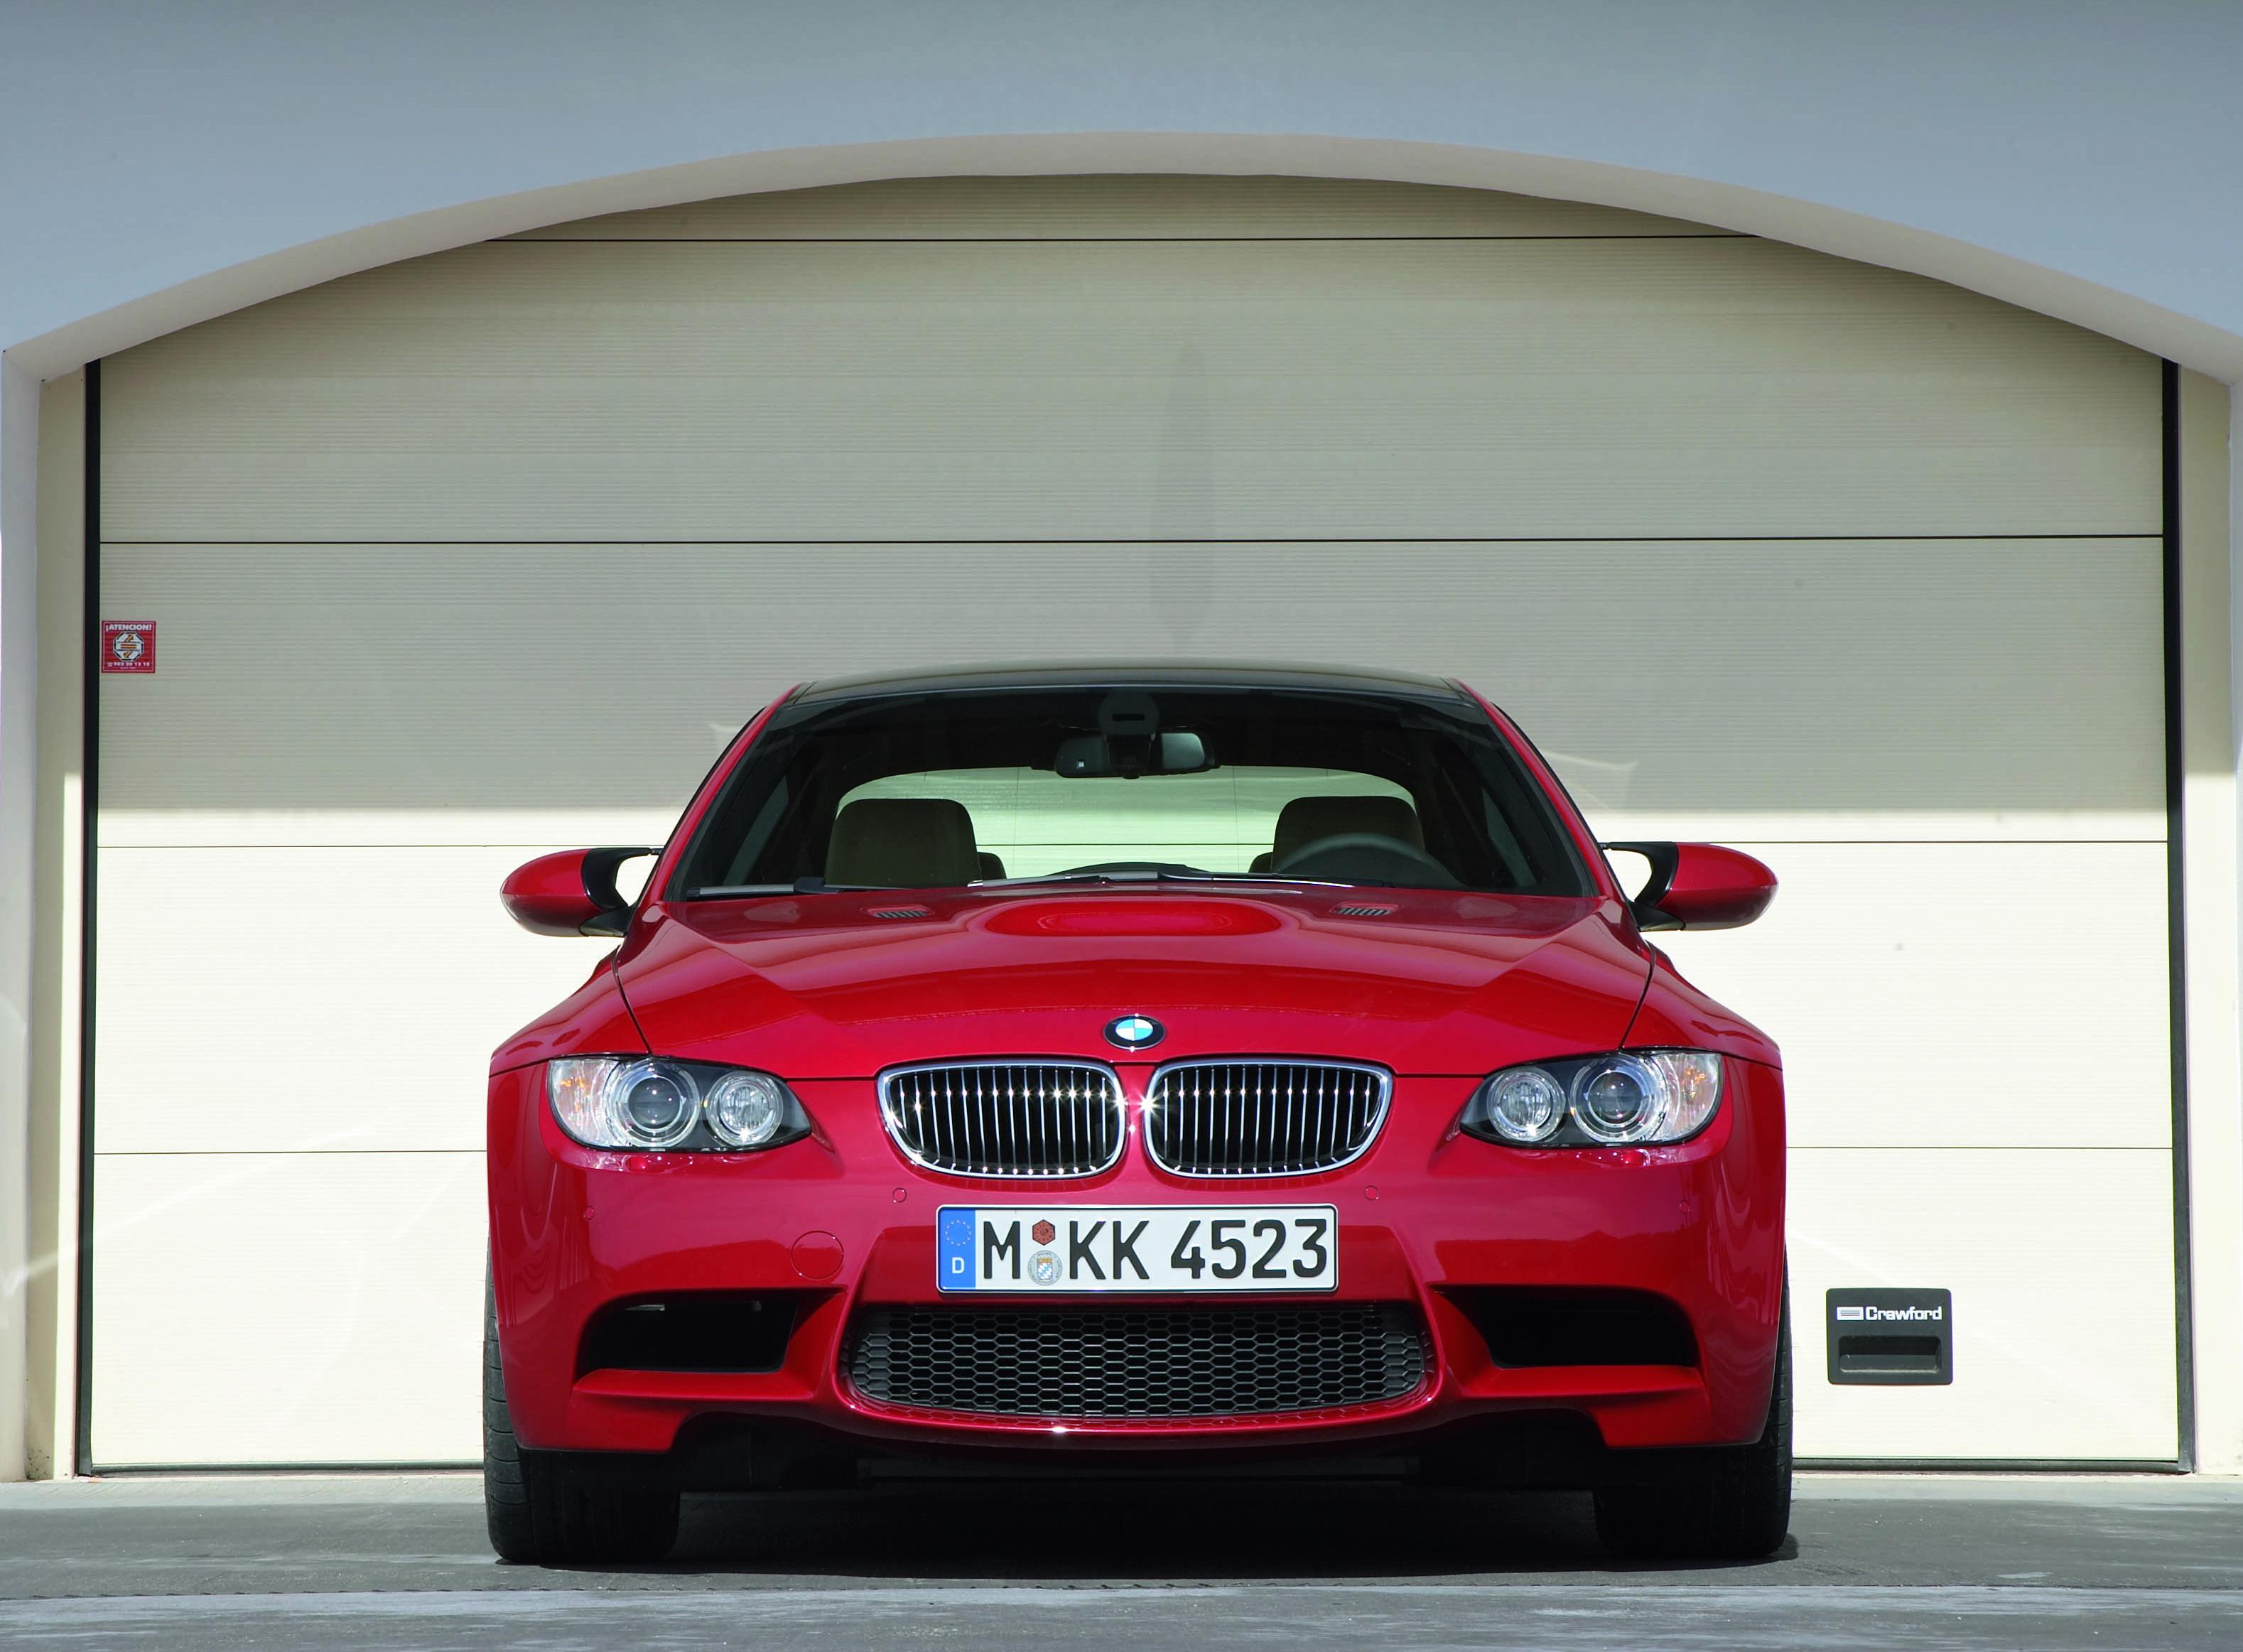 2008 BMW M3 Coupe Review - Top Speed